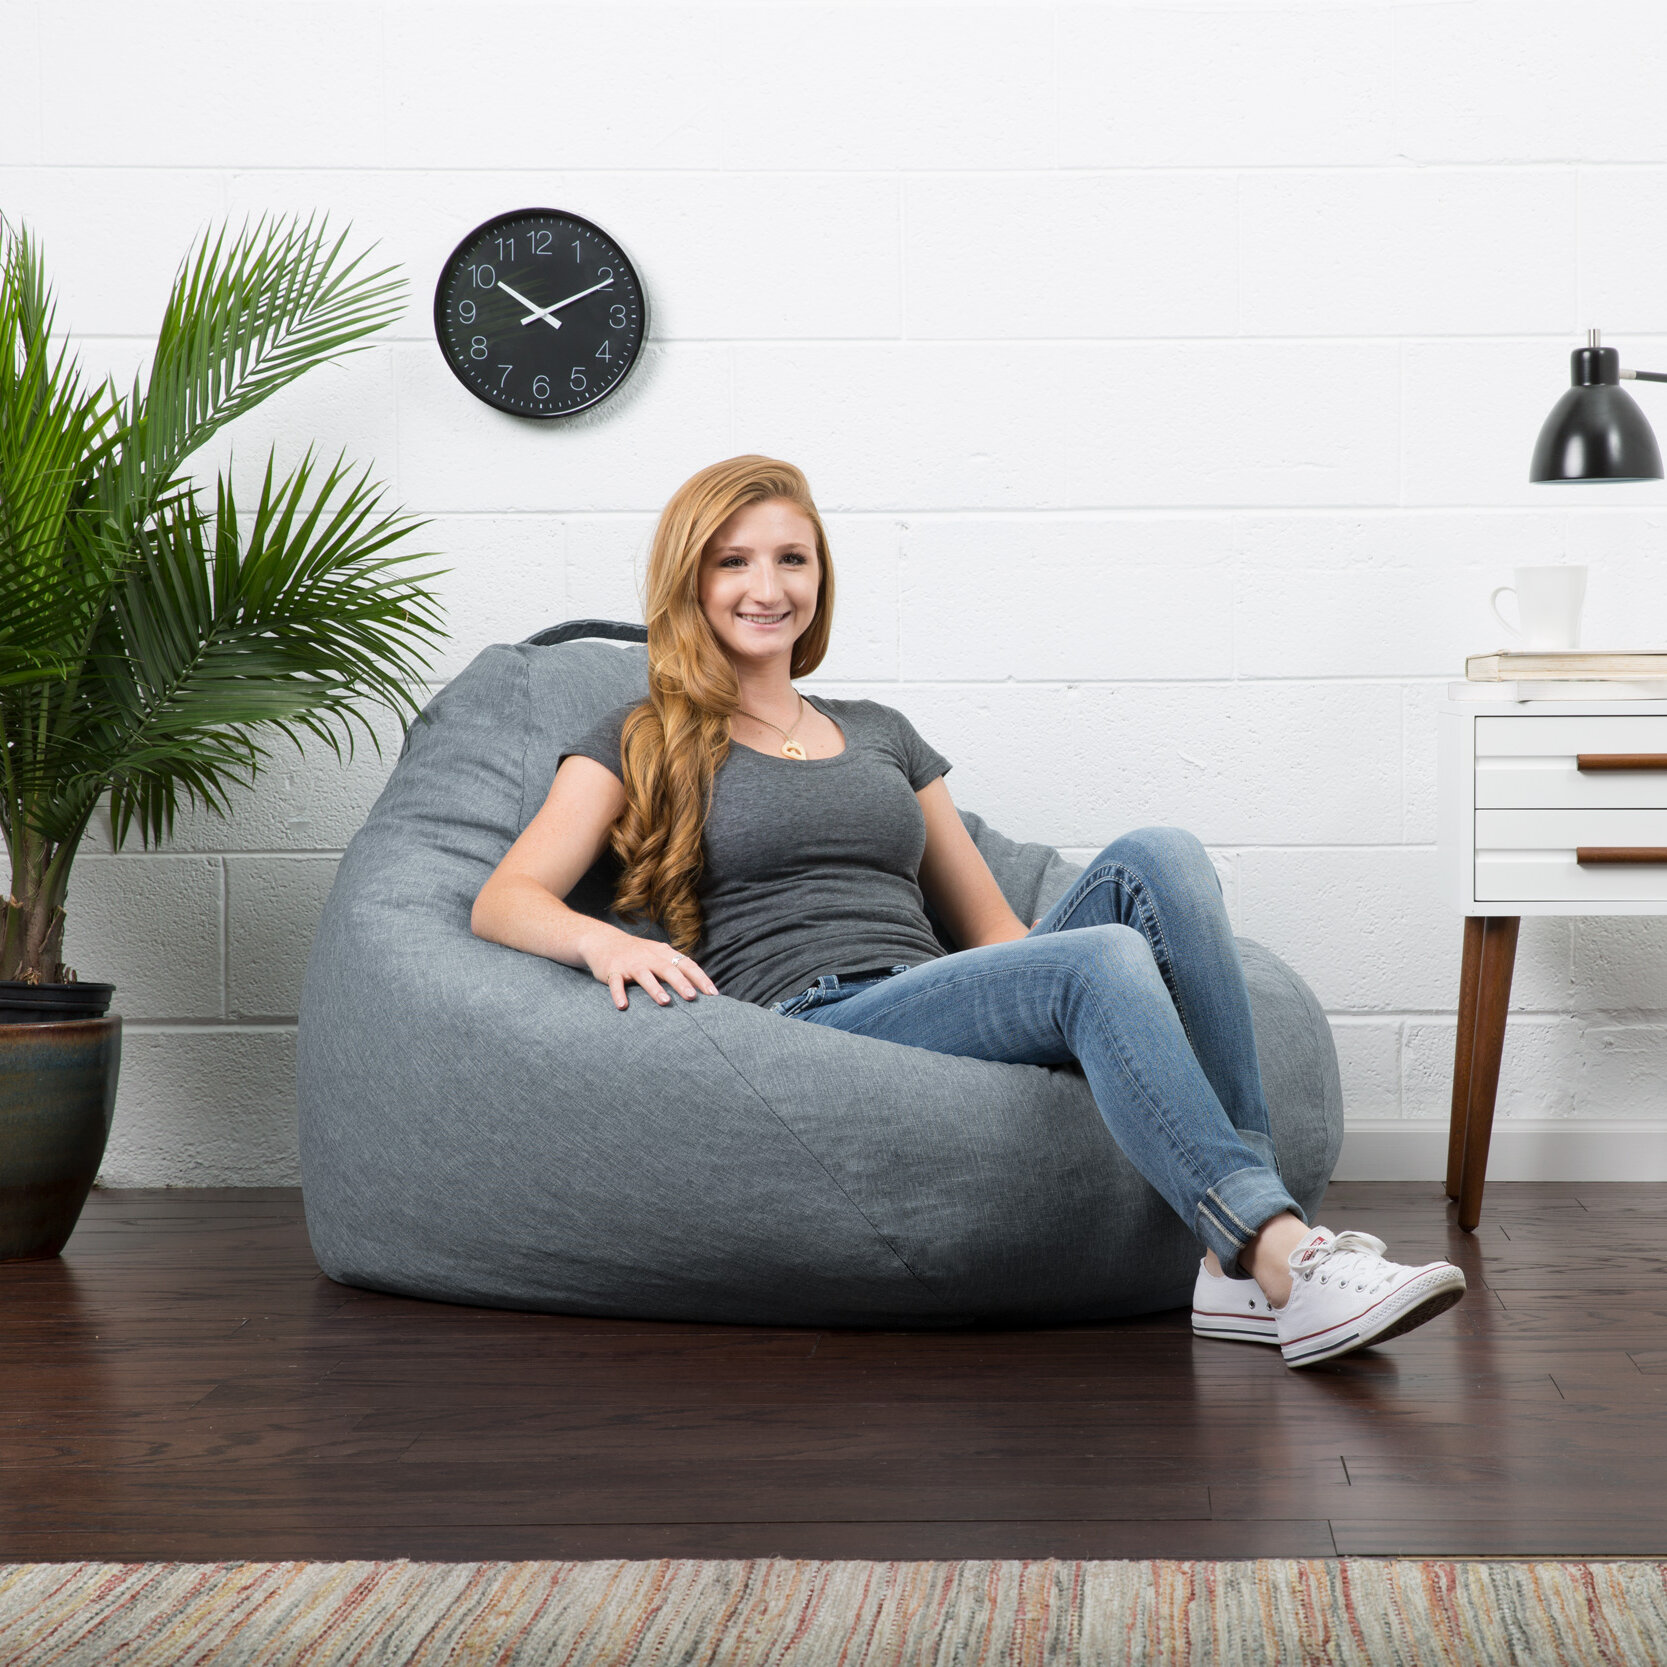 Astounding Comfort Research Big Joe Lux Large Bean Bag Chair Reviews Ibusinesslaw Wood Chair Design Ideas Ibusinesslaworg